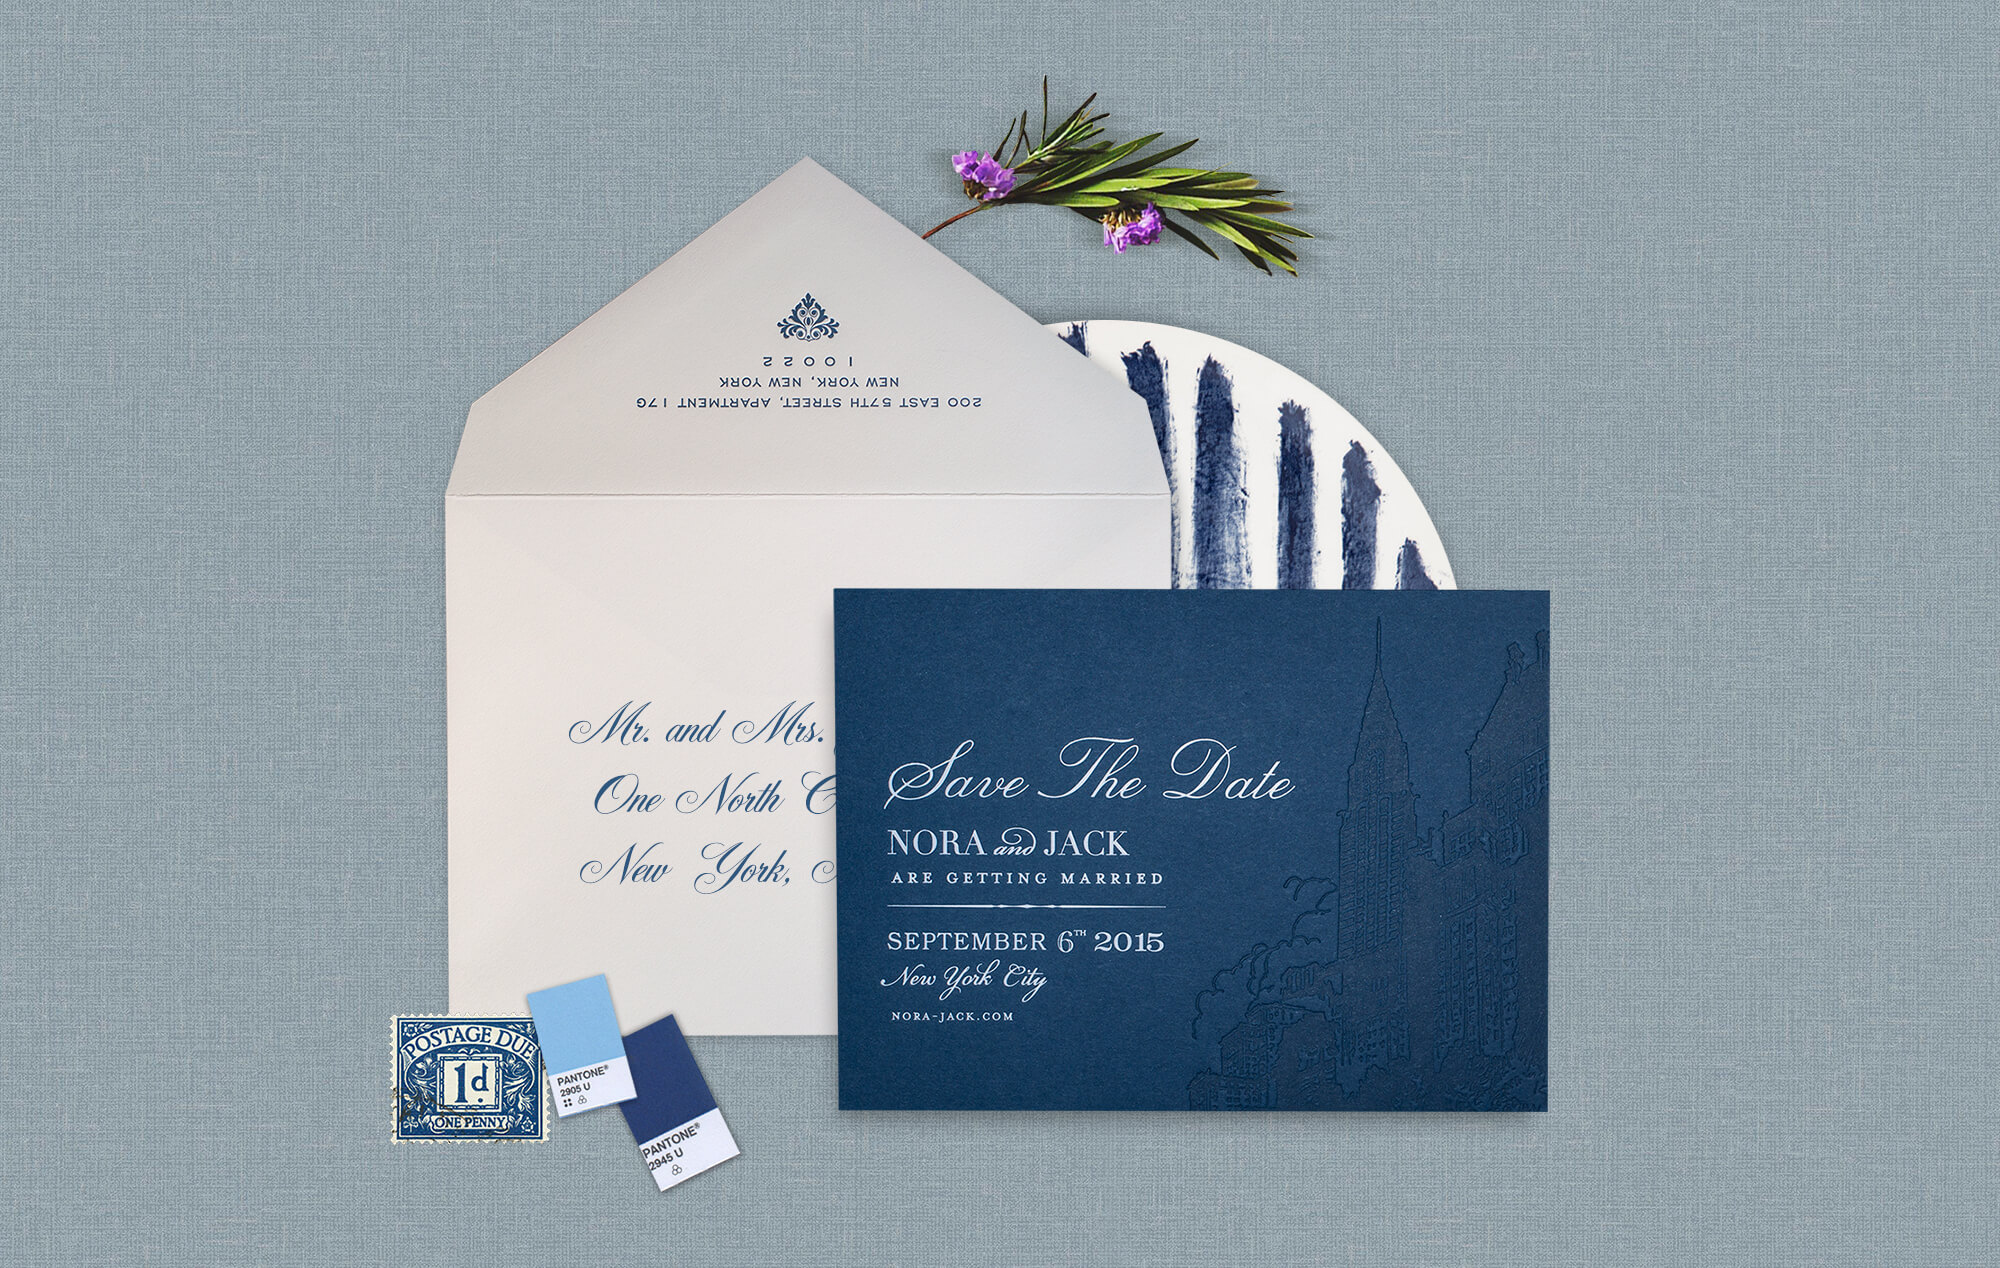 Blue and white NYC skyline wedding save the date